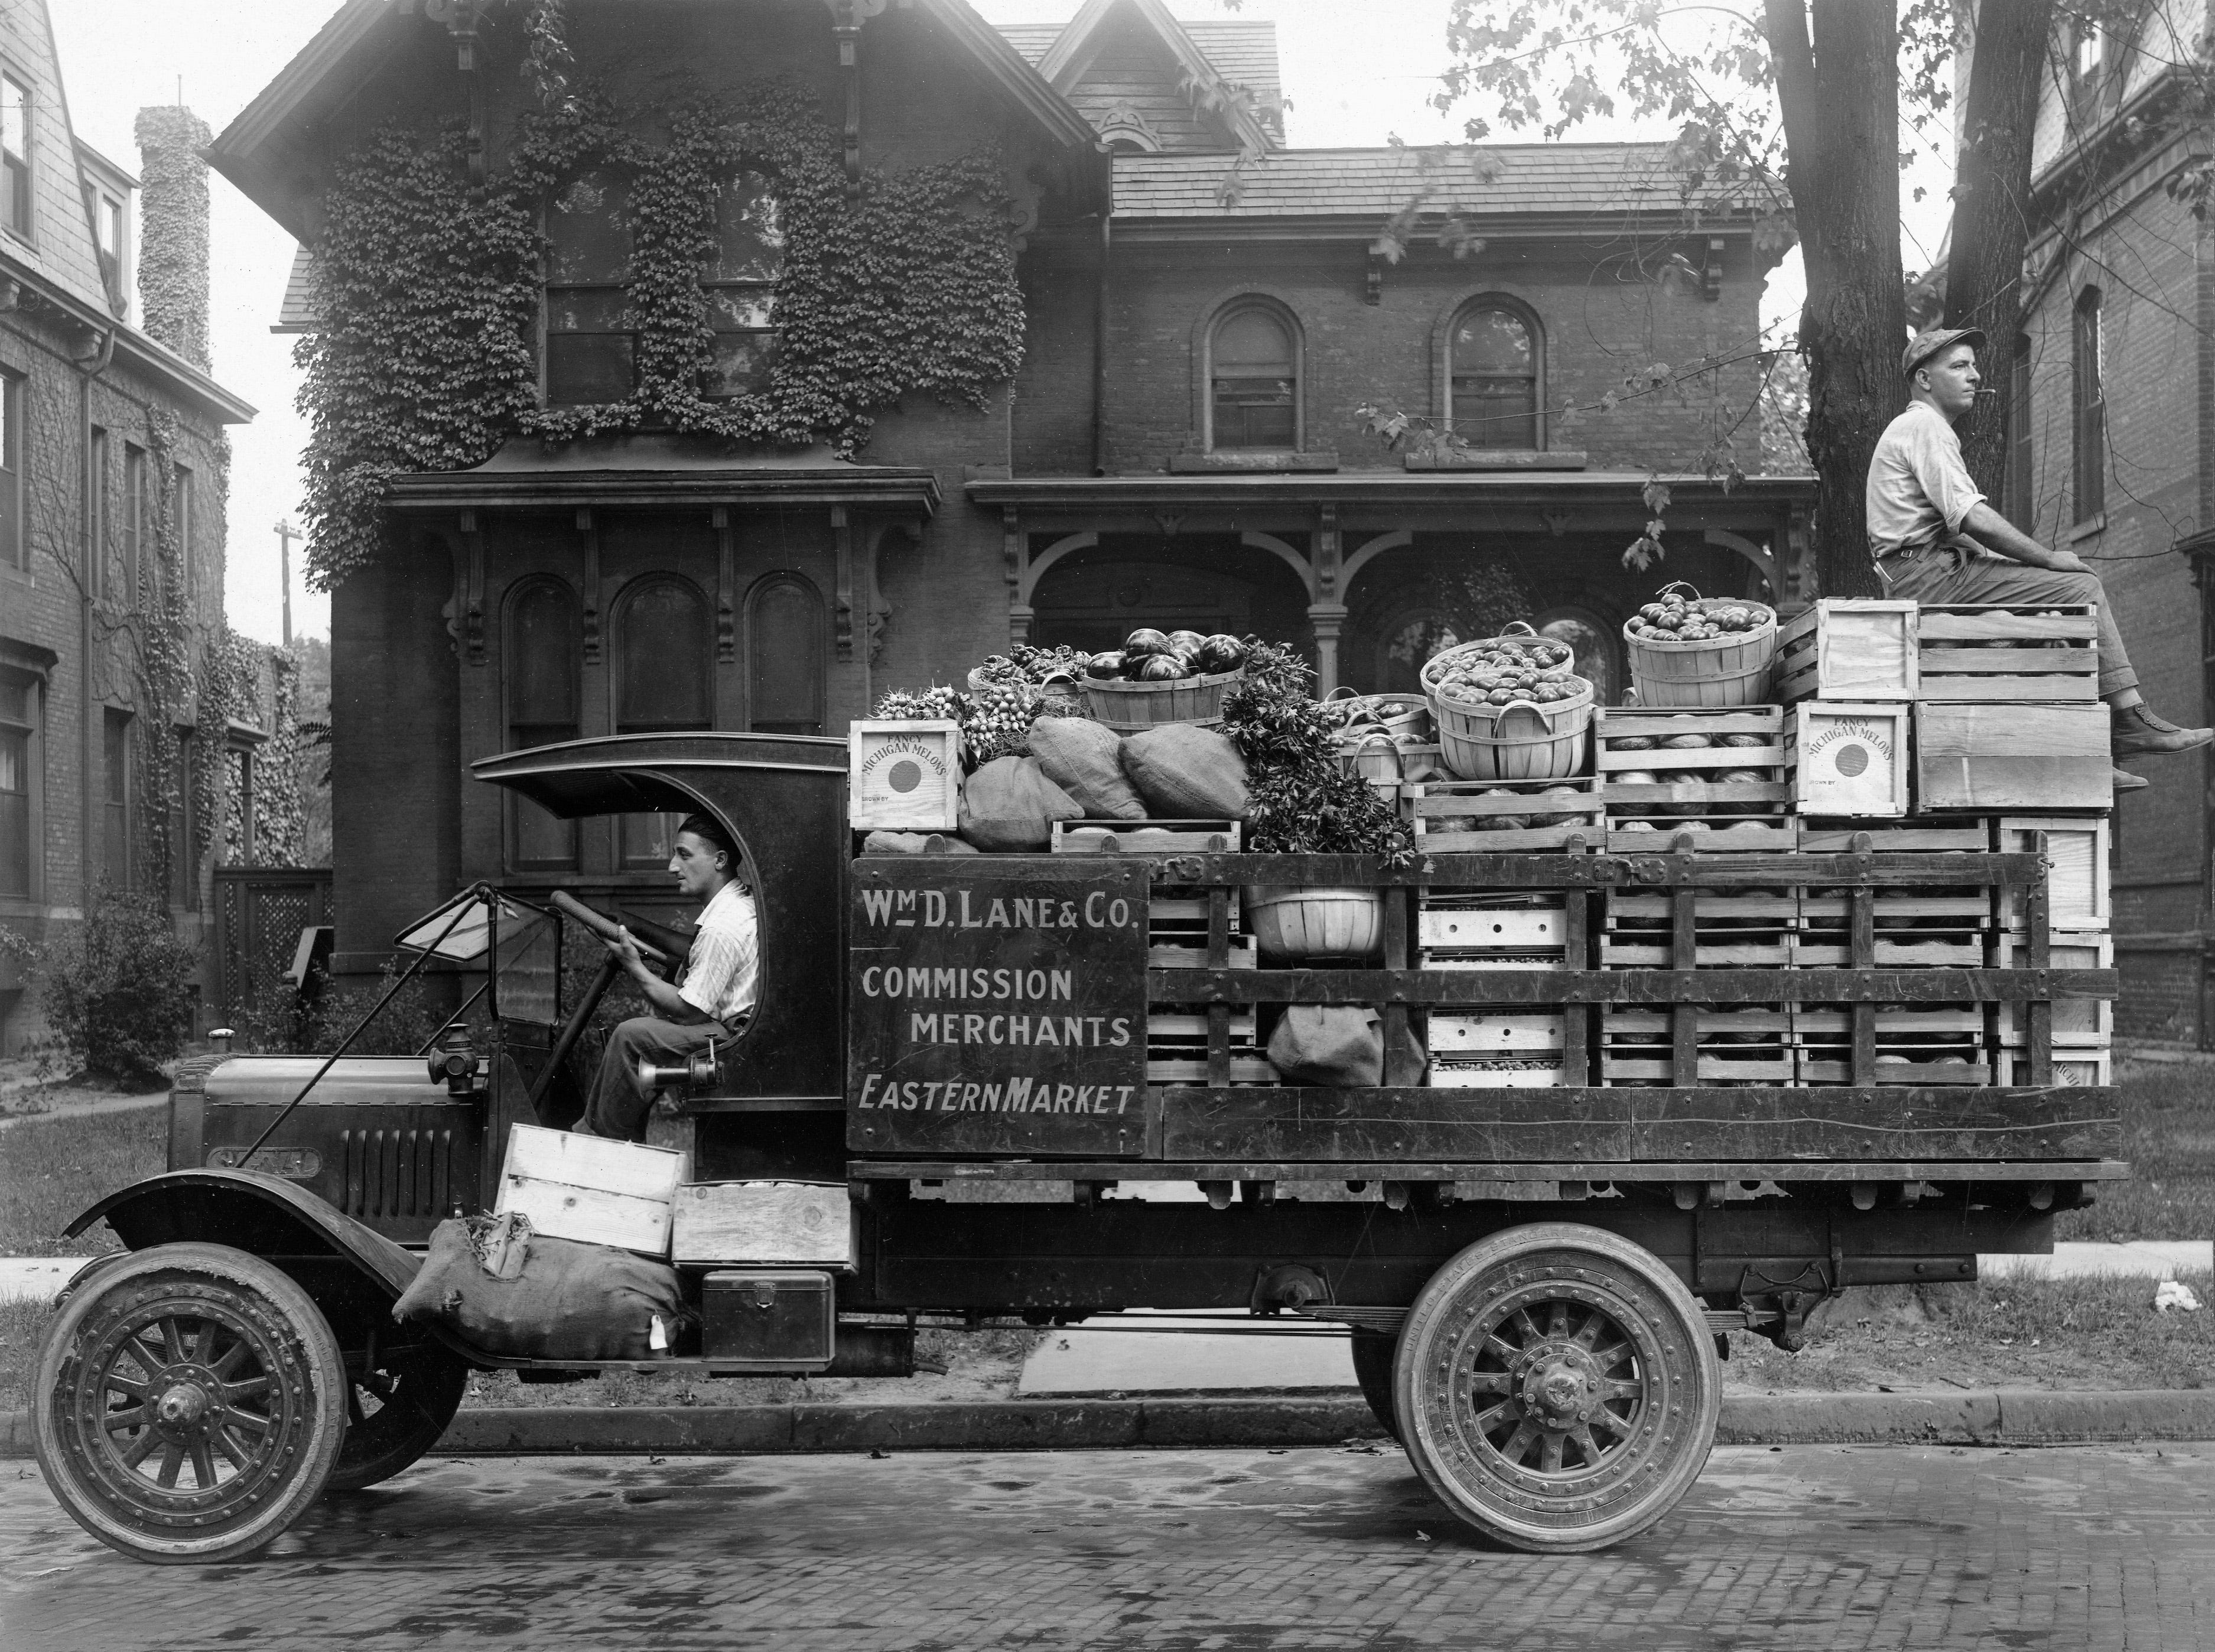 William D. Lane & Co. truck carrying produce to the Eastern Market, circa 1920.  See more historic photos like this in Detroit Memories Volume II: A Pictorial History of the Early Years through the 1940s. Order today at Detroit2.PictorialBook.com.